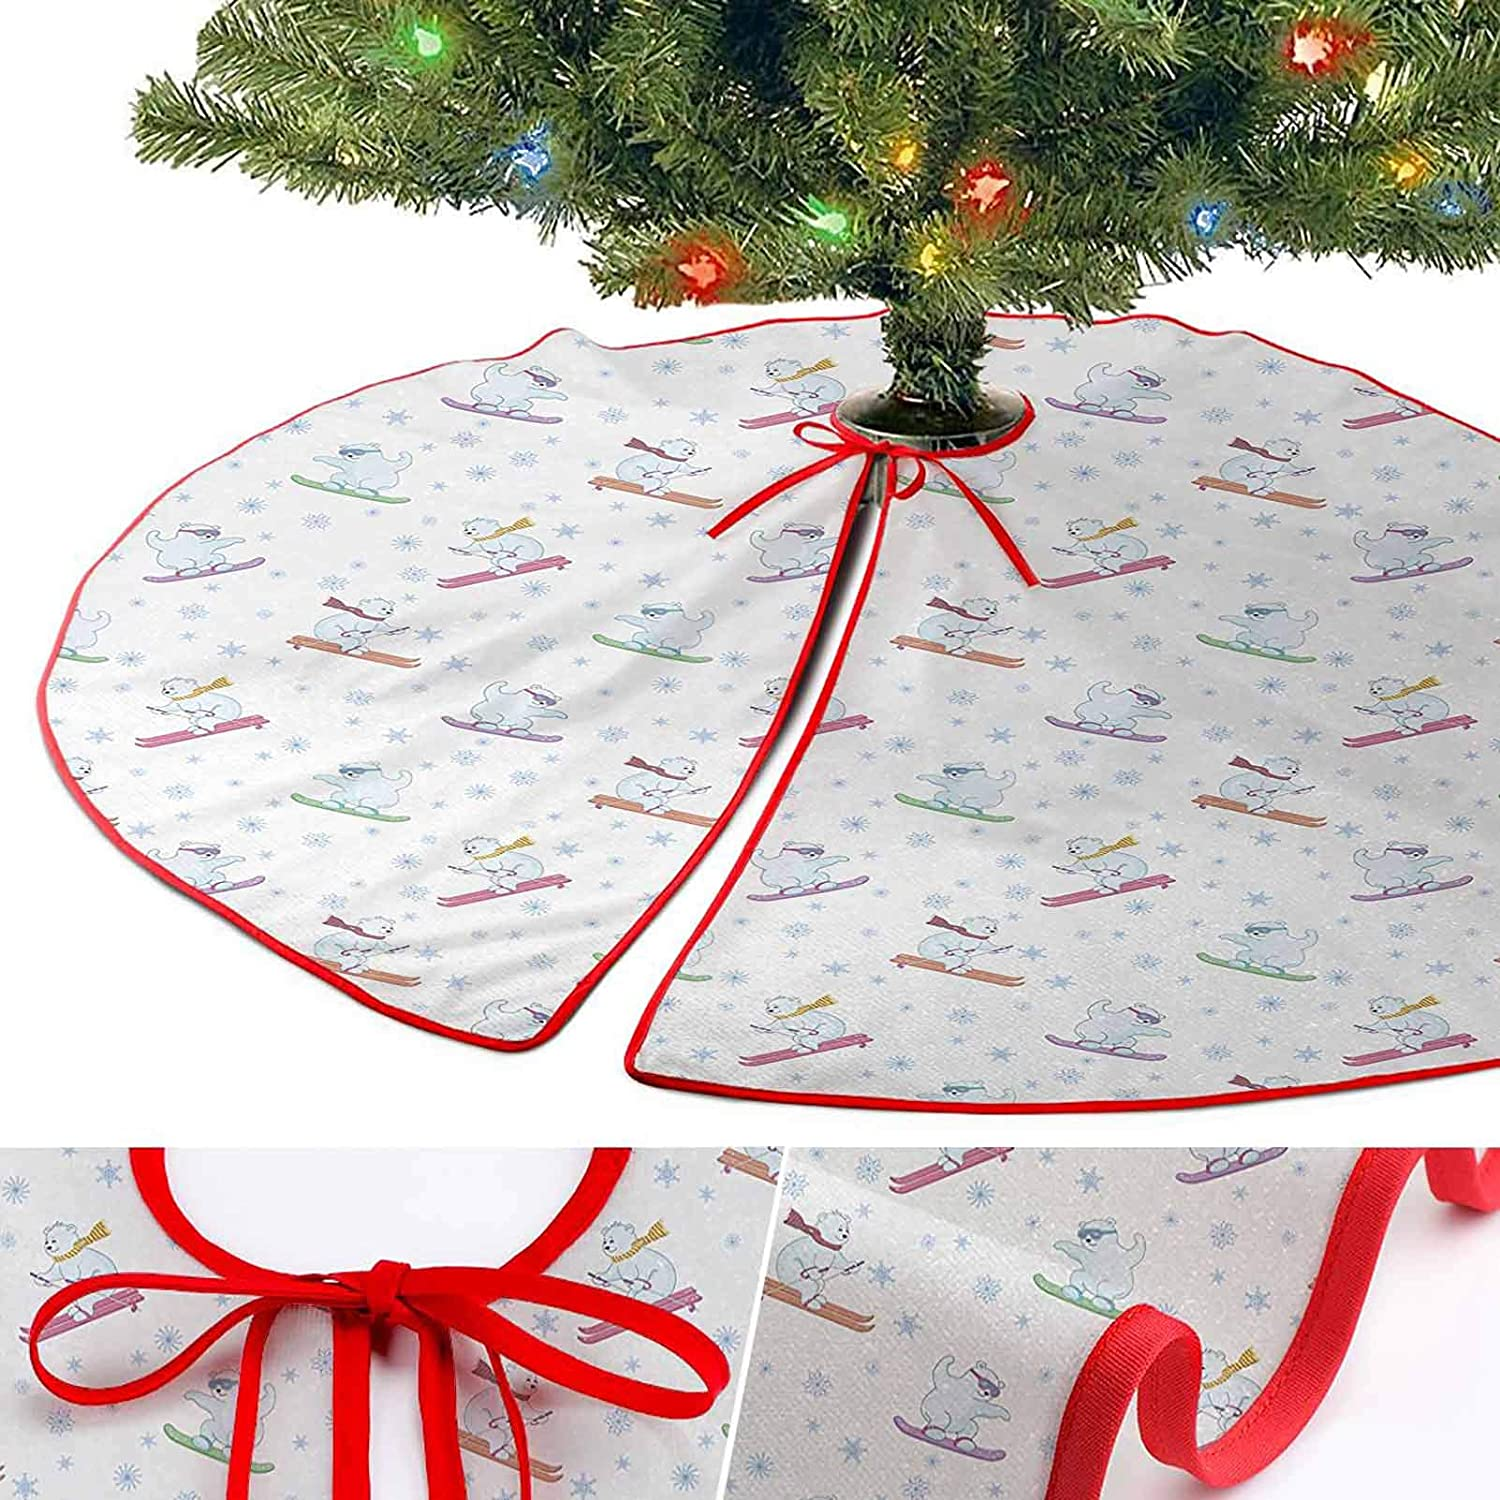 YOYI-Home Christmas Tree Skirt Pattern, Bear Tree Skirts 36